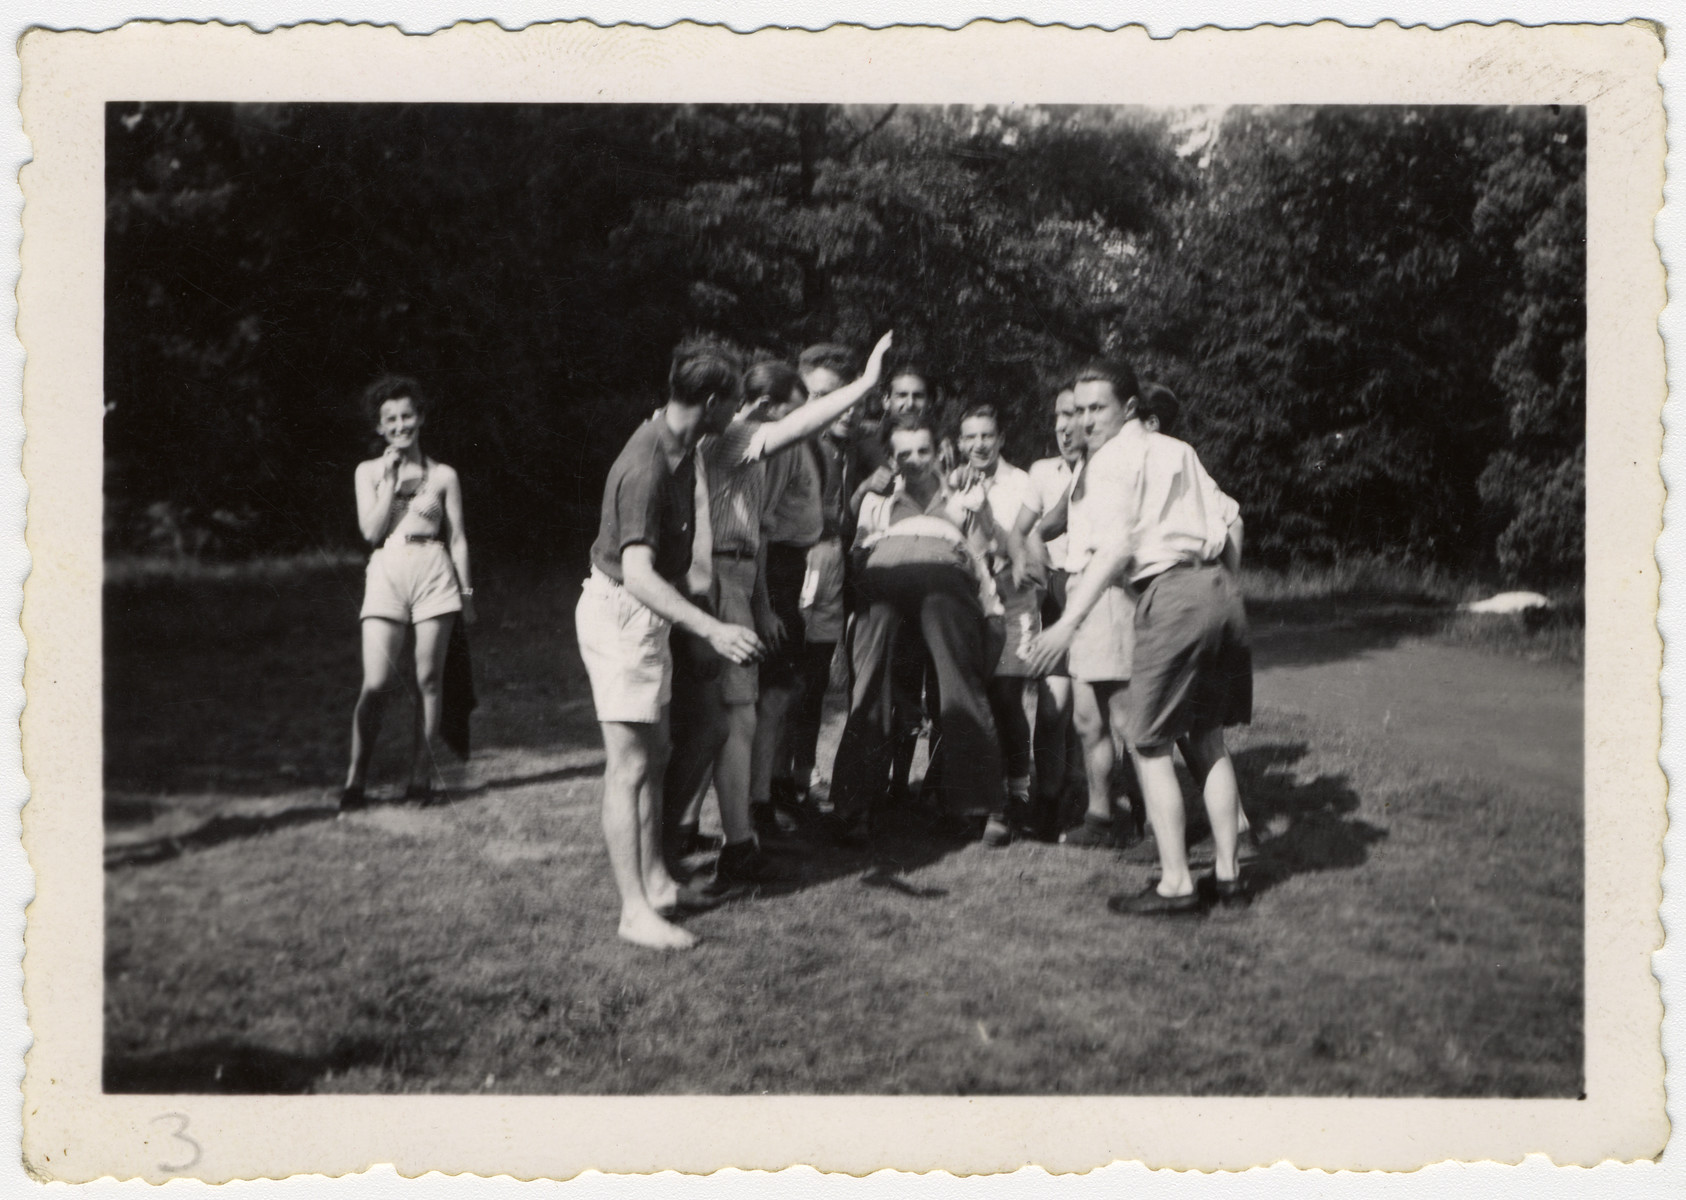 Jewish youth play on the grounds of the La Ramee agricultural school.    The school was established after Jewish students were expelled from general schools  and directed by Haroun Tazieff.